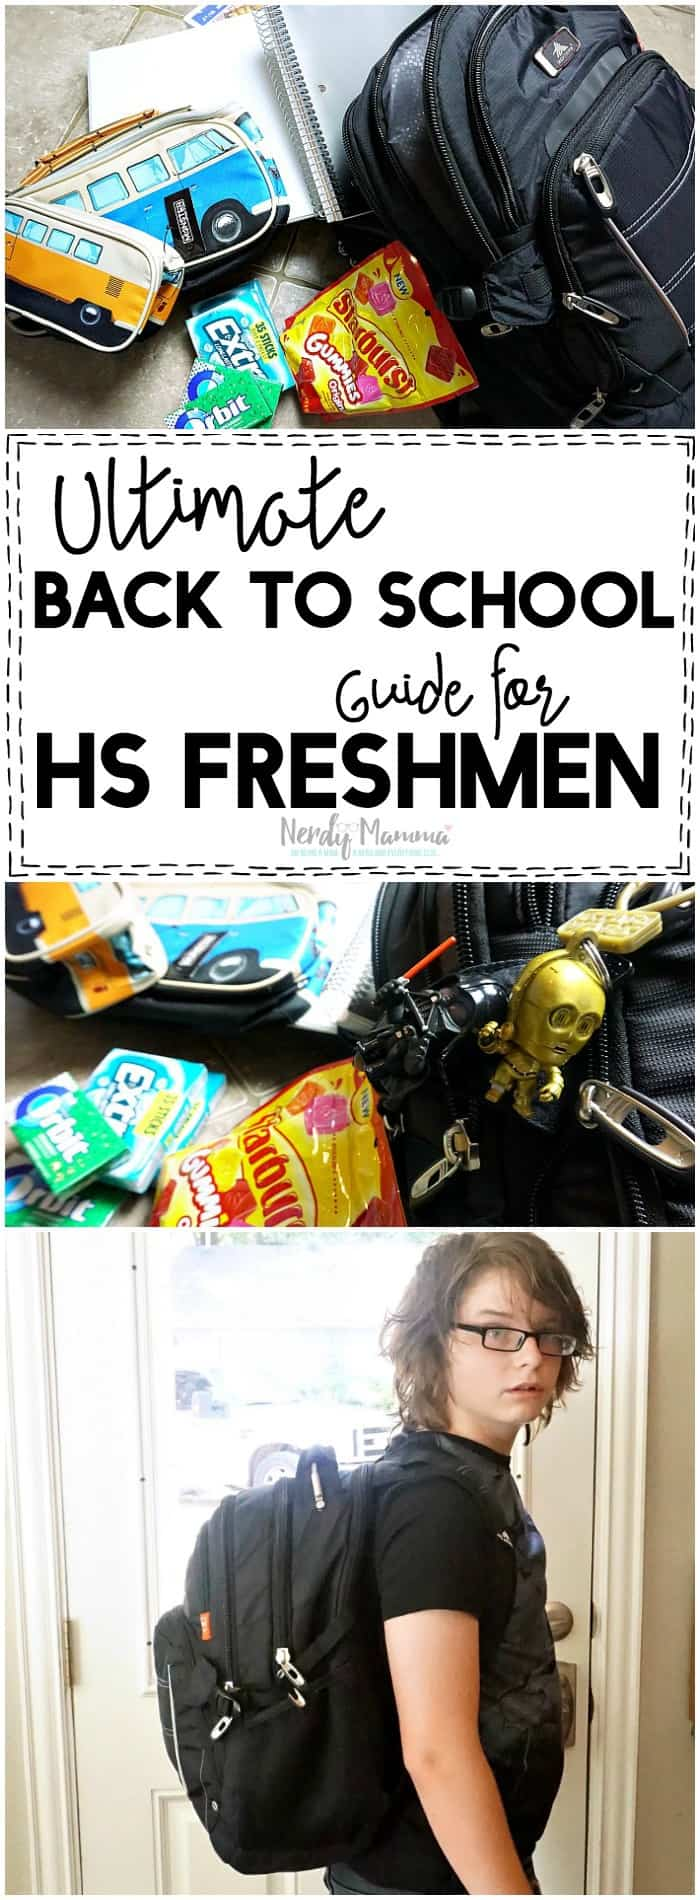 This Ultimate Back to School Guide for High School Freshman is so perfect! I need all of these things for my kid.